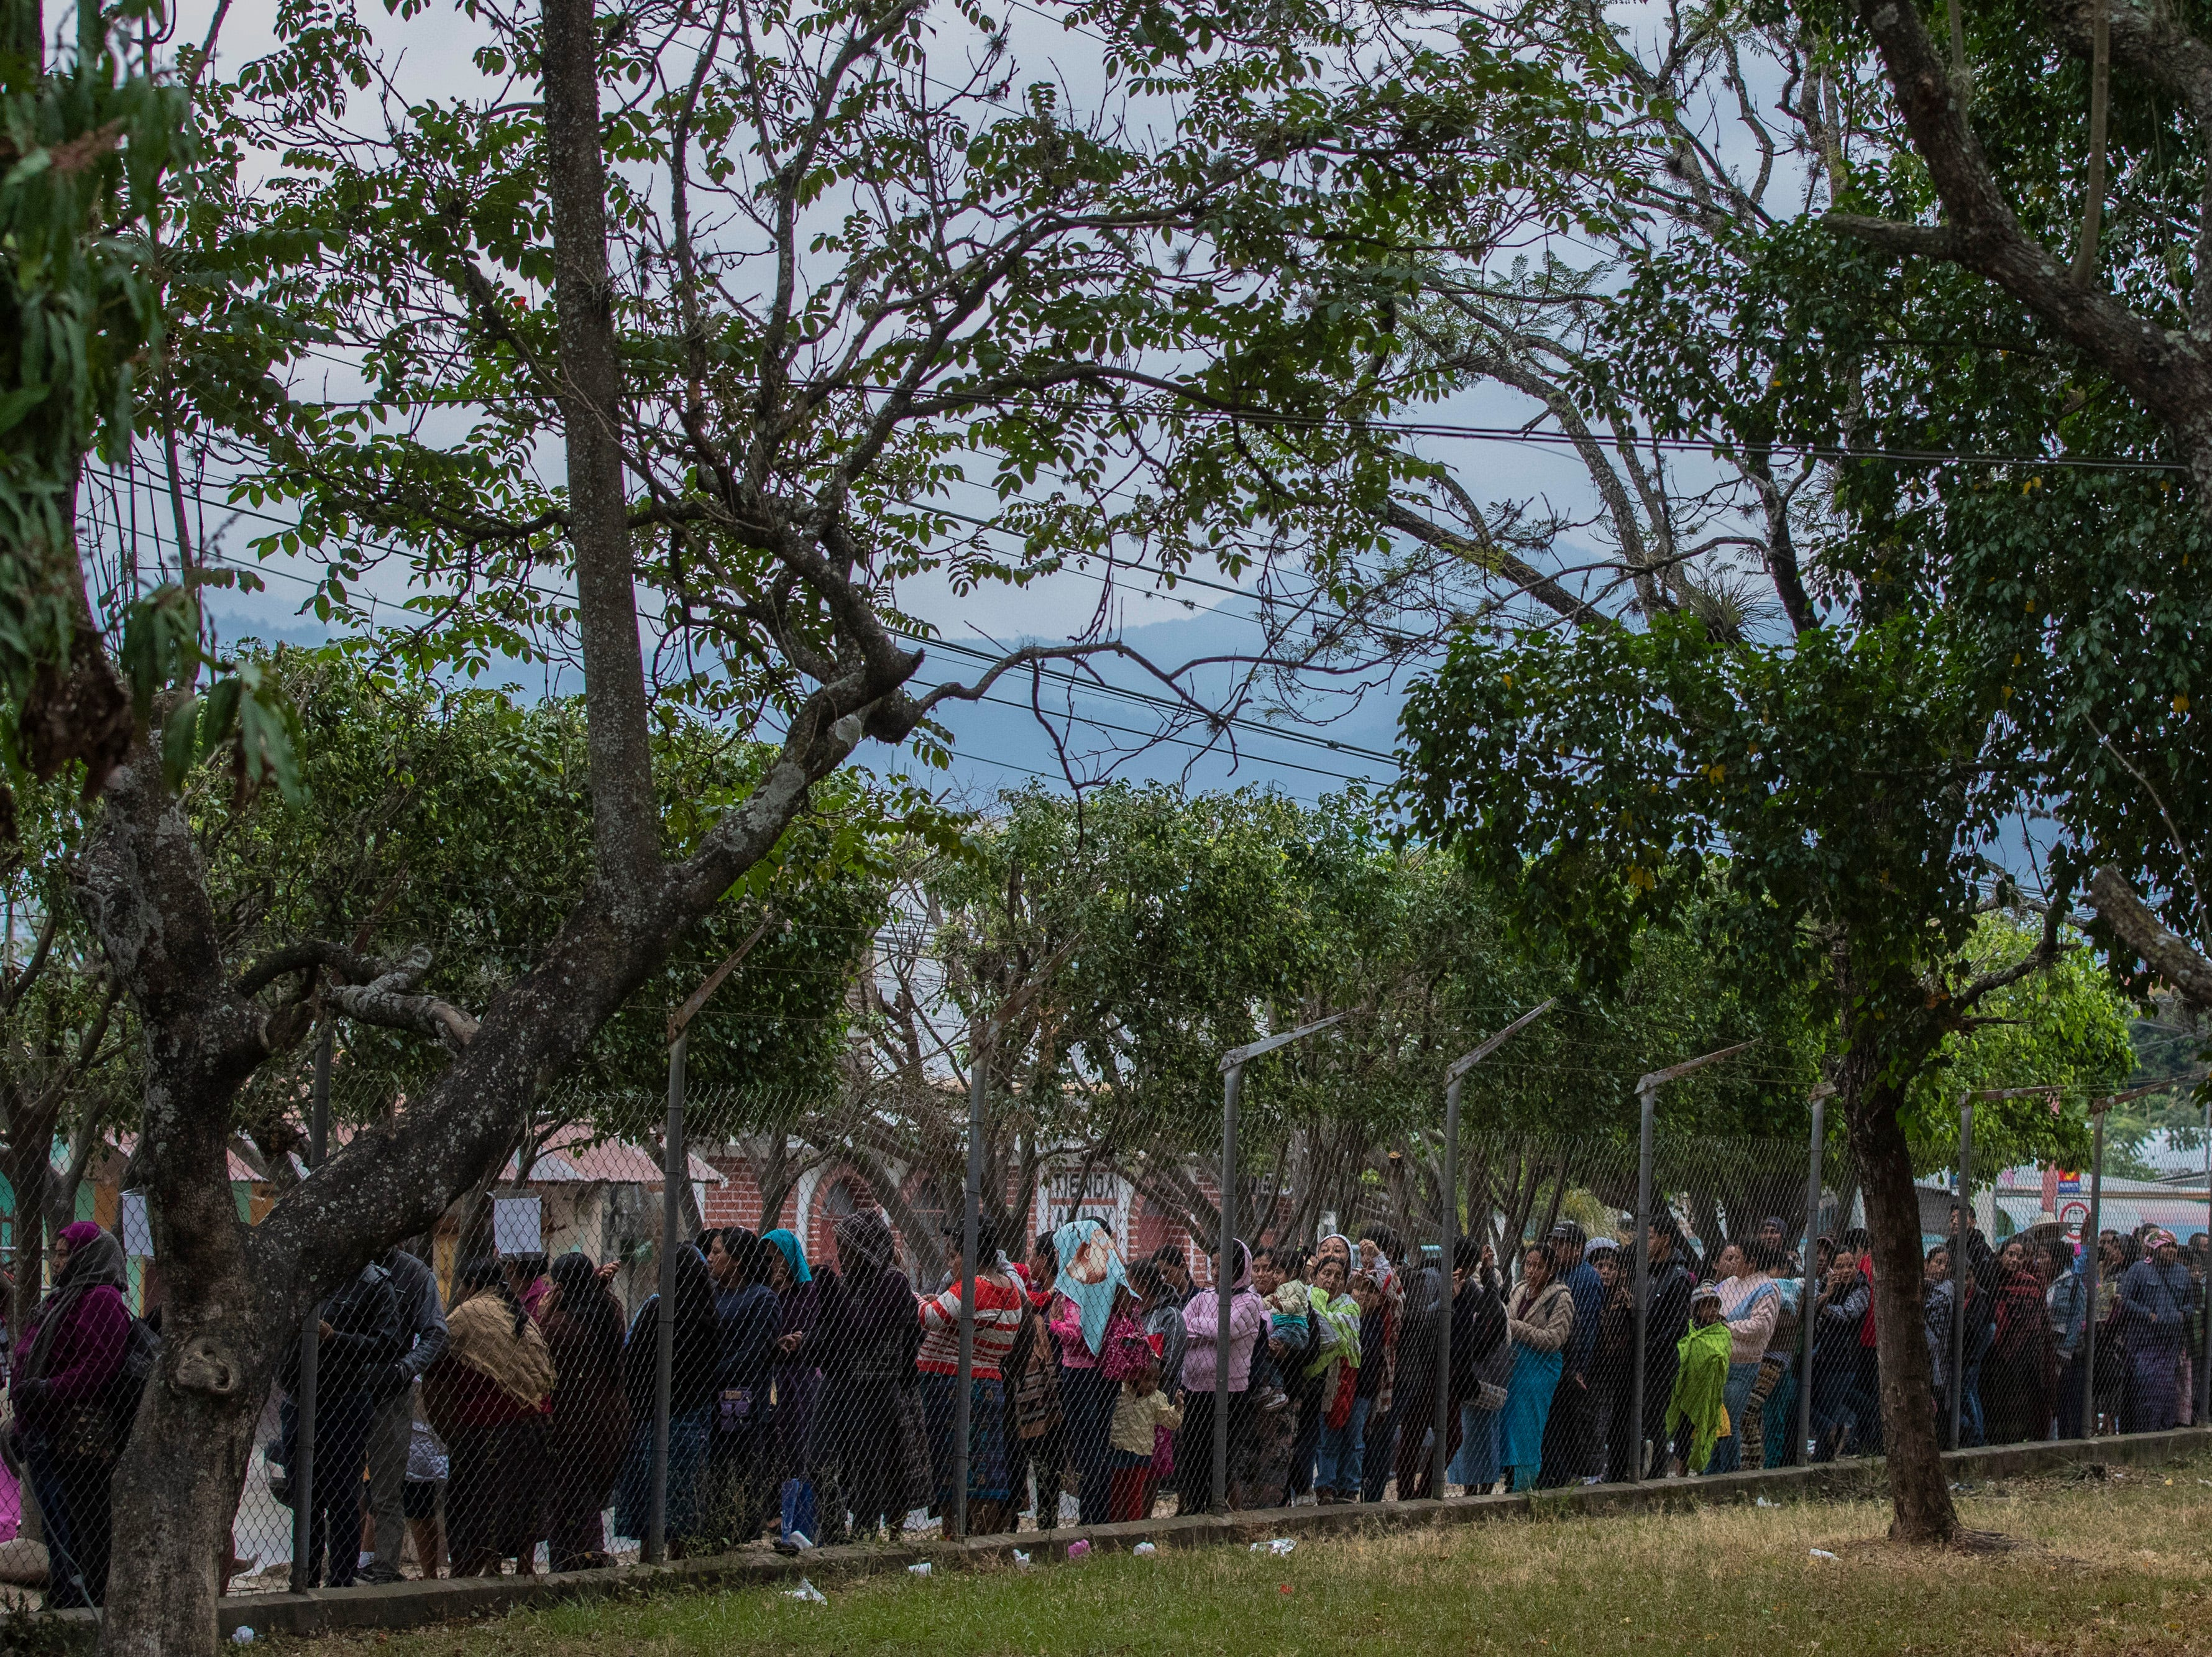 Over a thousand people wait in line to be seen by the Children of the Americas medical mission group at the Hospital Nacional de Salamá. The line of hopeful patients stretched from the Hospital Nacional de Salamá gates three city blocks by dawn. Jan 20, 2019